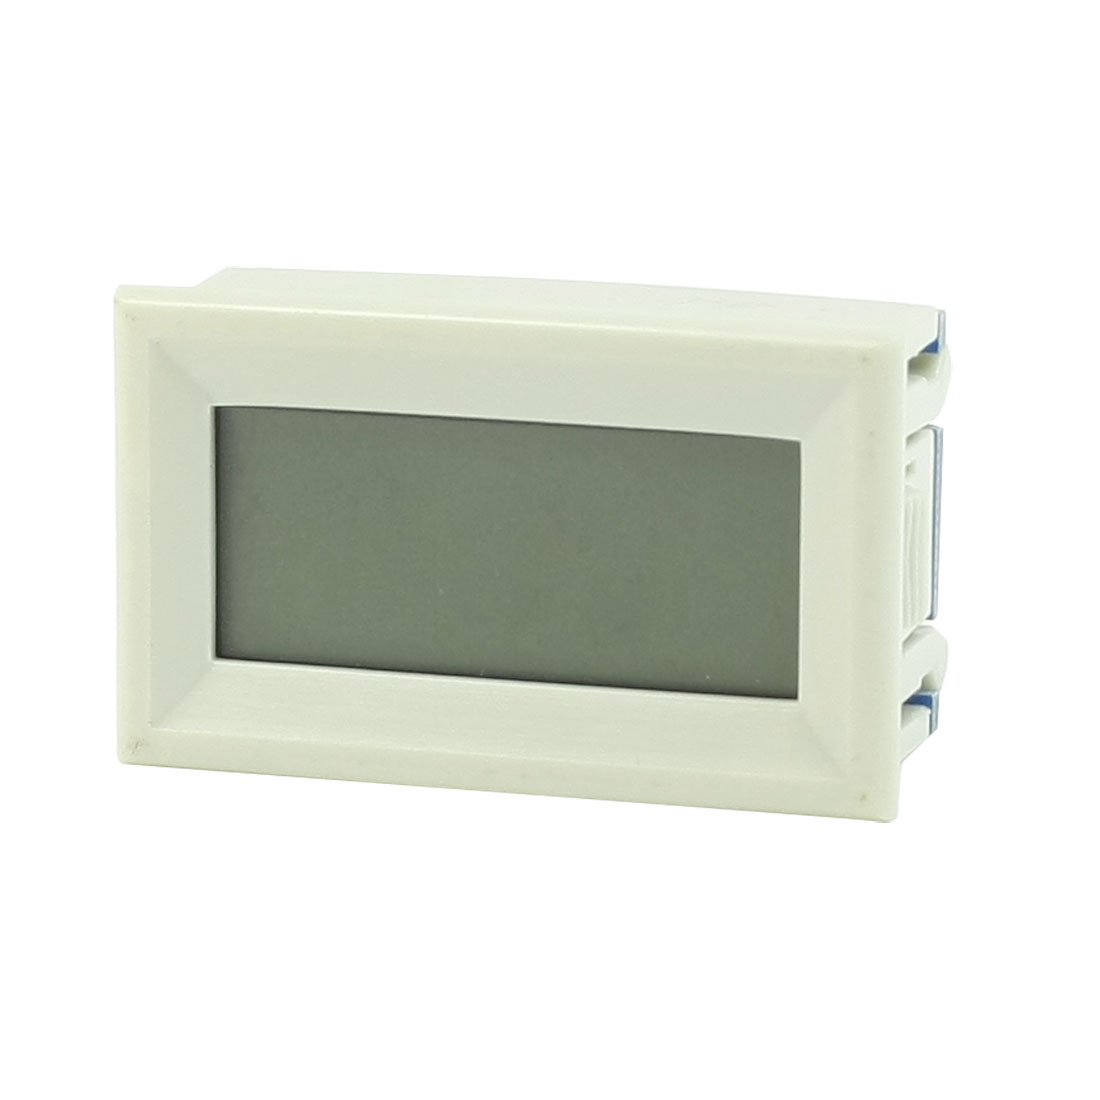 Off White Rectangle Case DC 0-2A LCD Display Digital Ammeter Panel